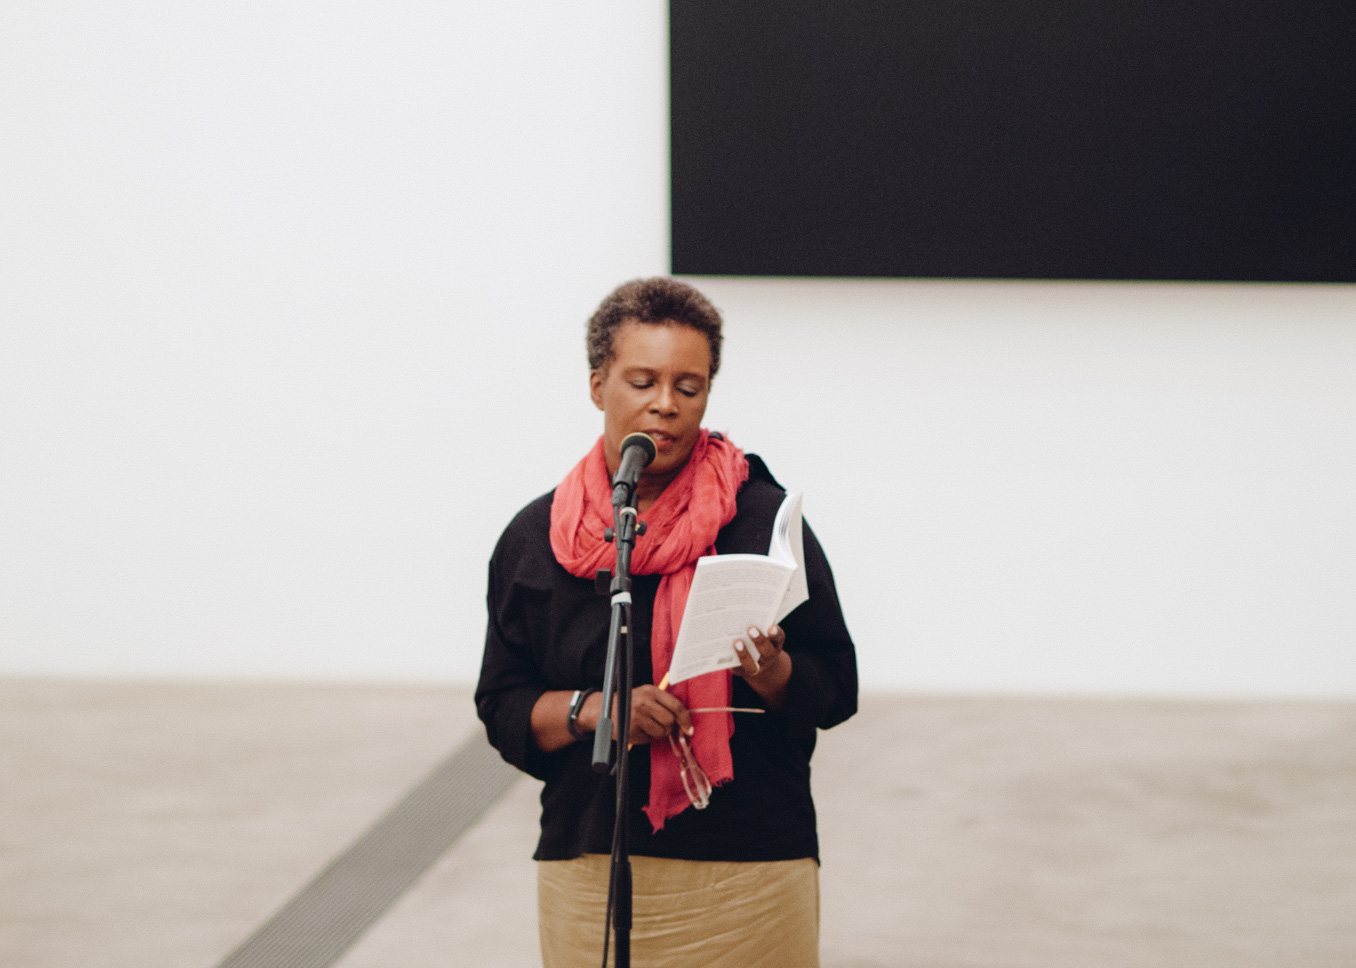 Poetry of Its Own Making  , August 20, 2014, Pulitzer Arts Foundation. A collaborative poetry event featuring poets Claudia Rankine and Christian Bök.